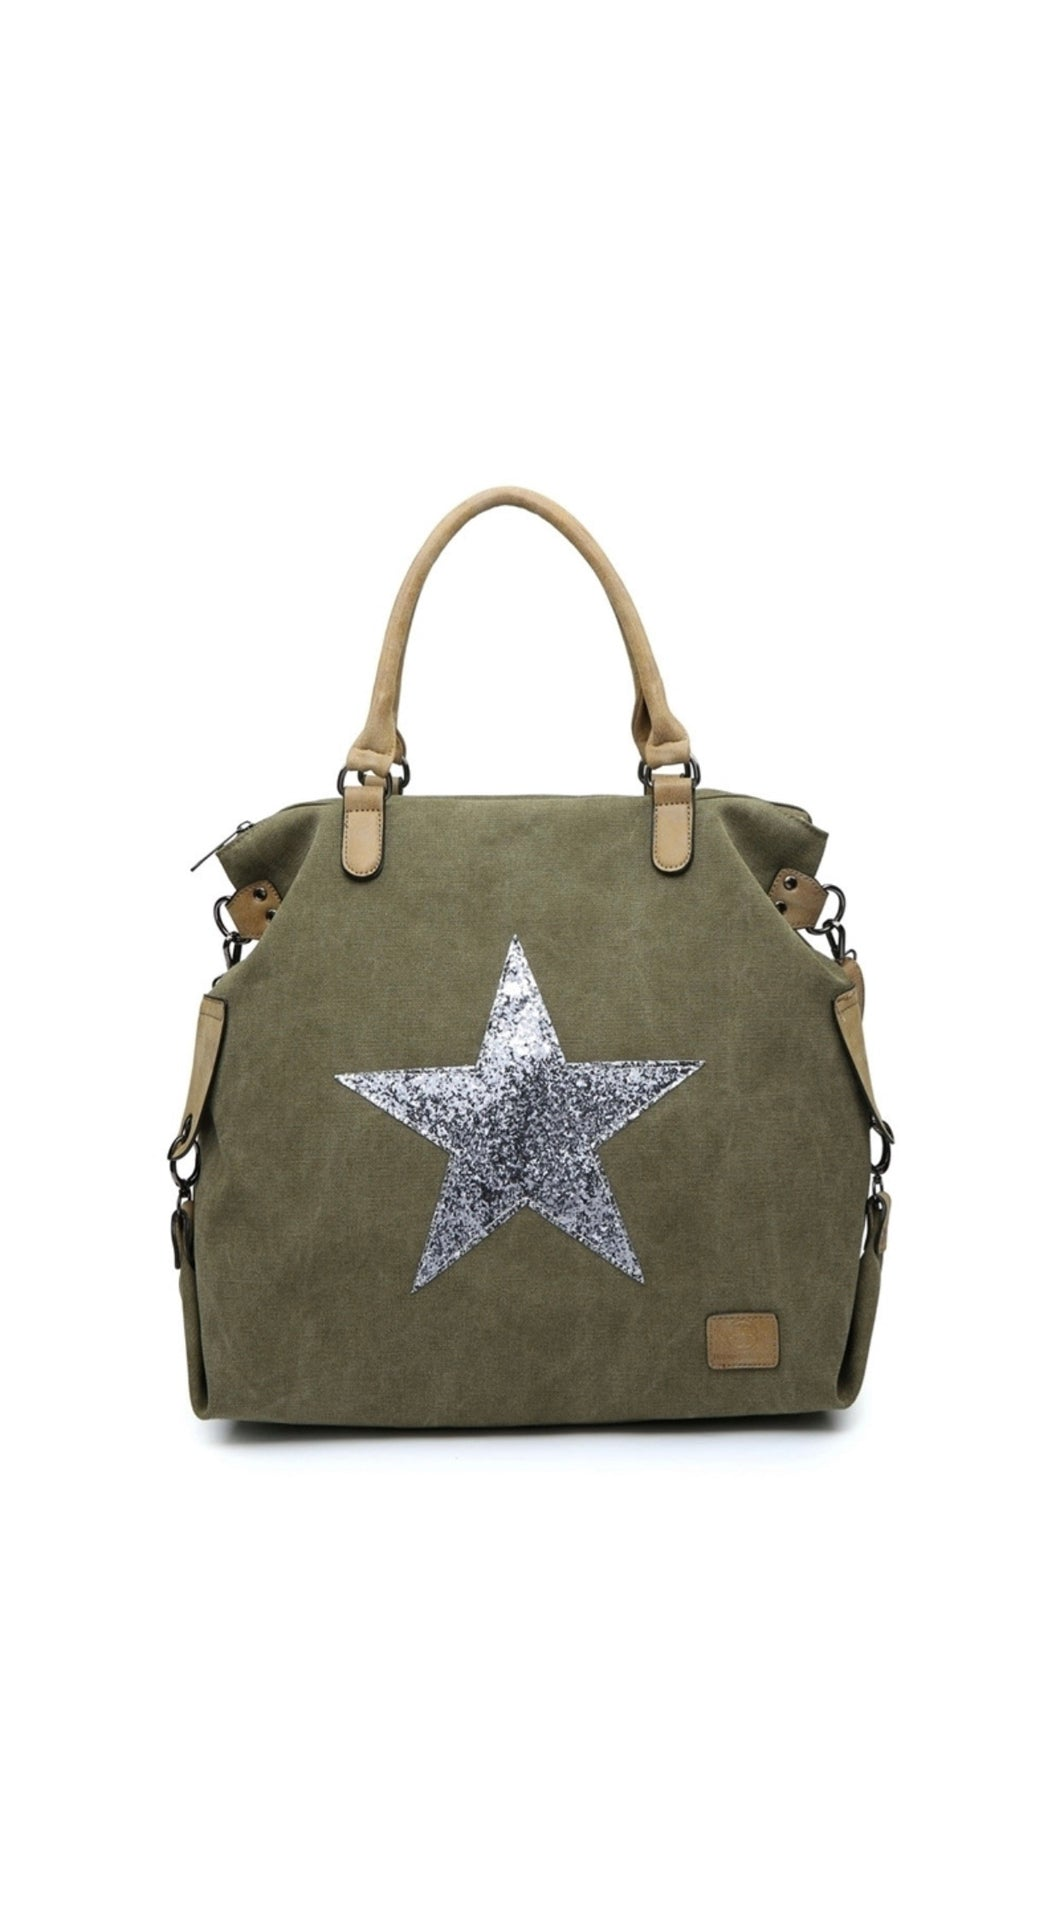 Khaki green star bag with silver star - Large size